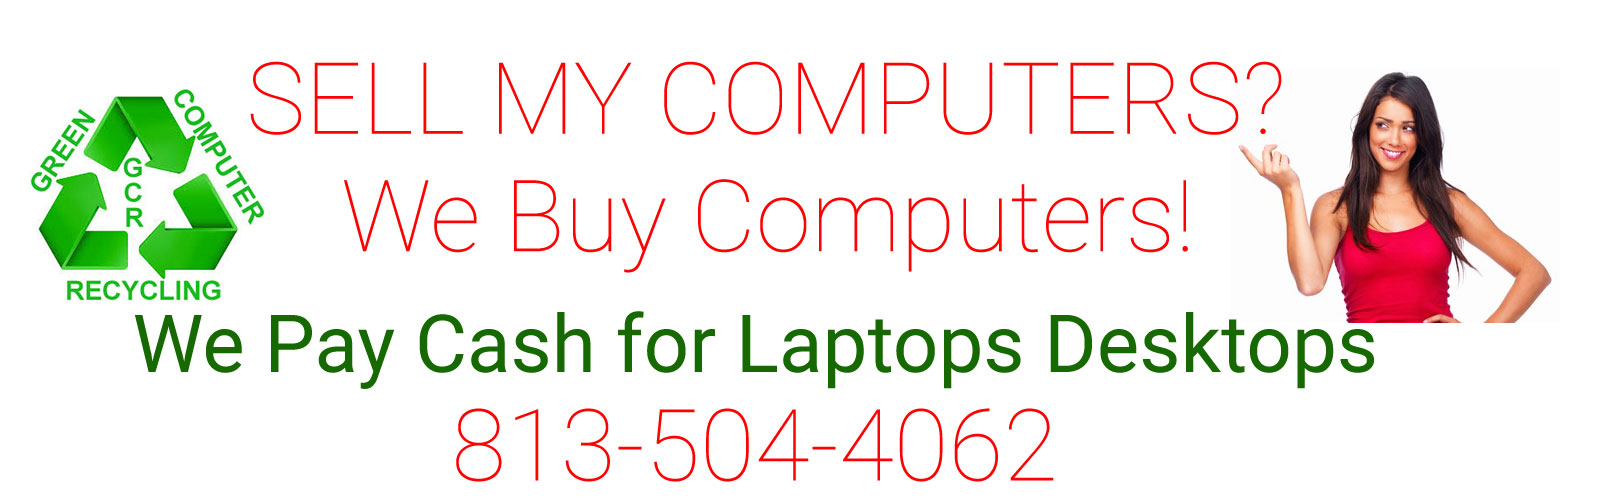 sell-my-computers,